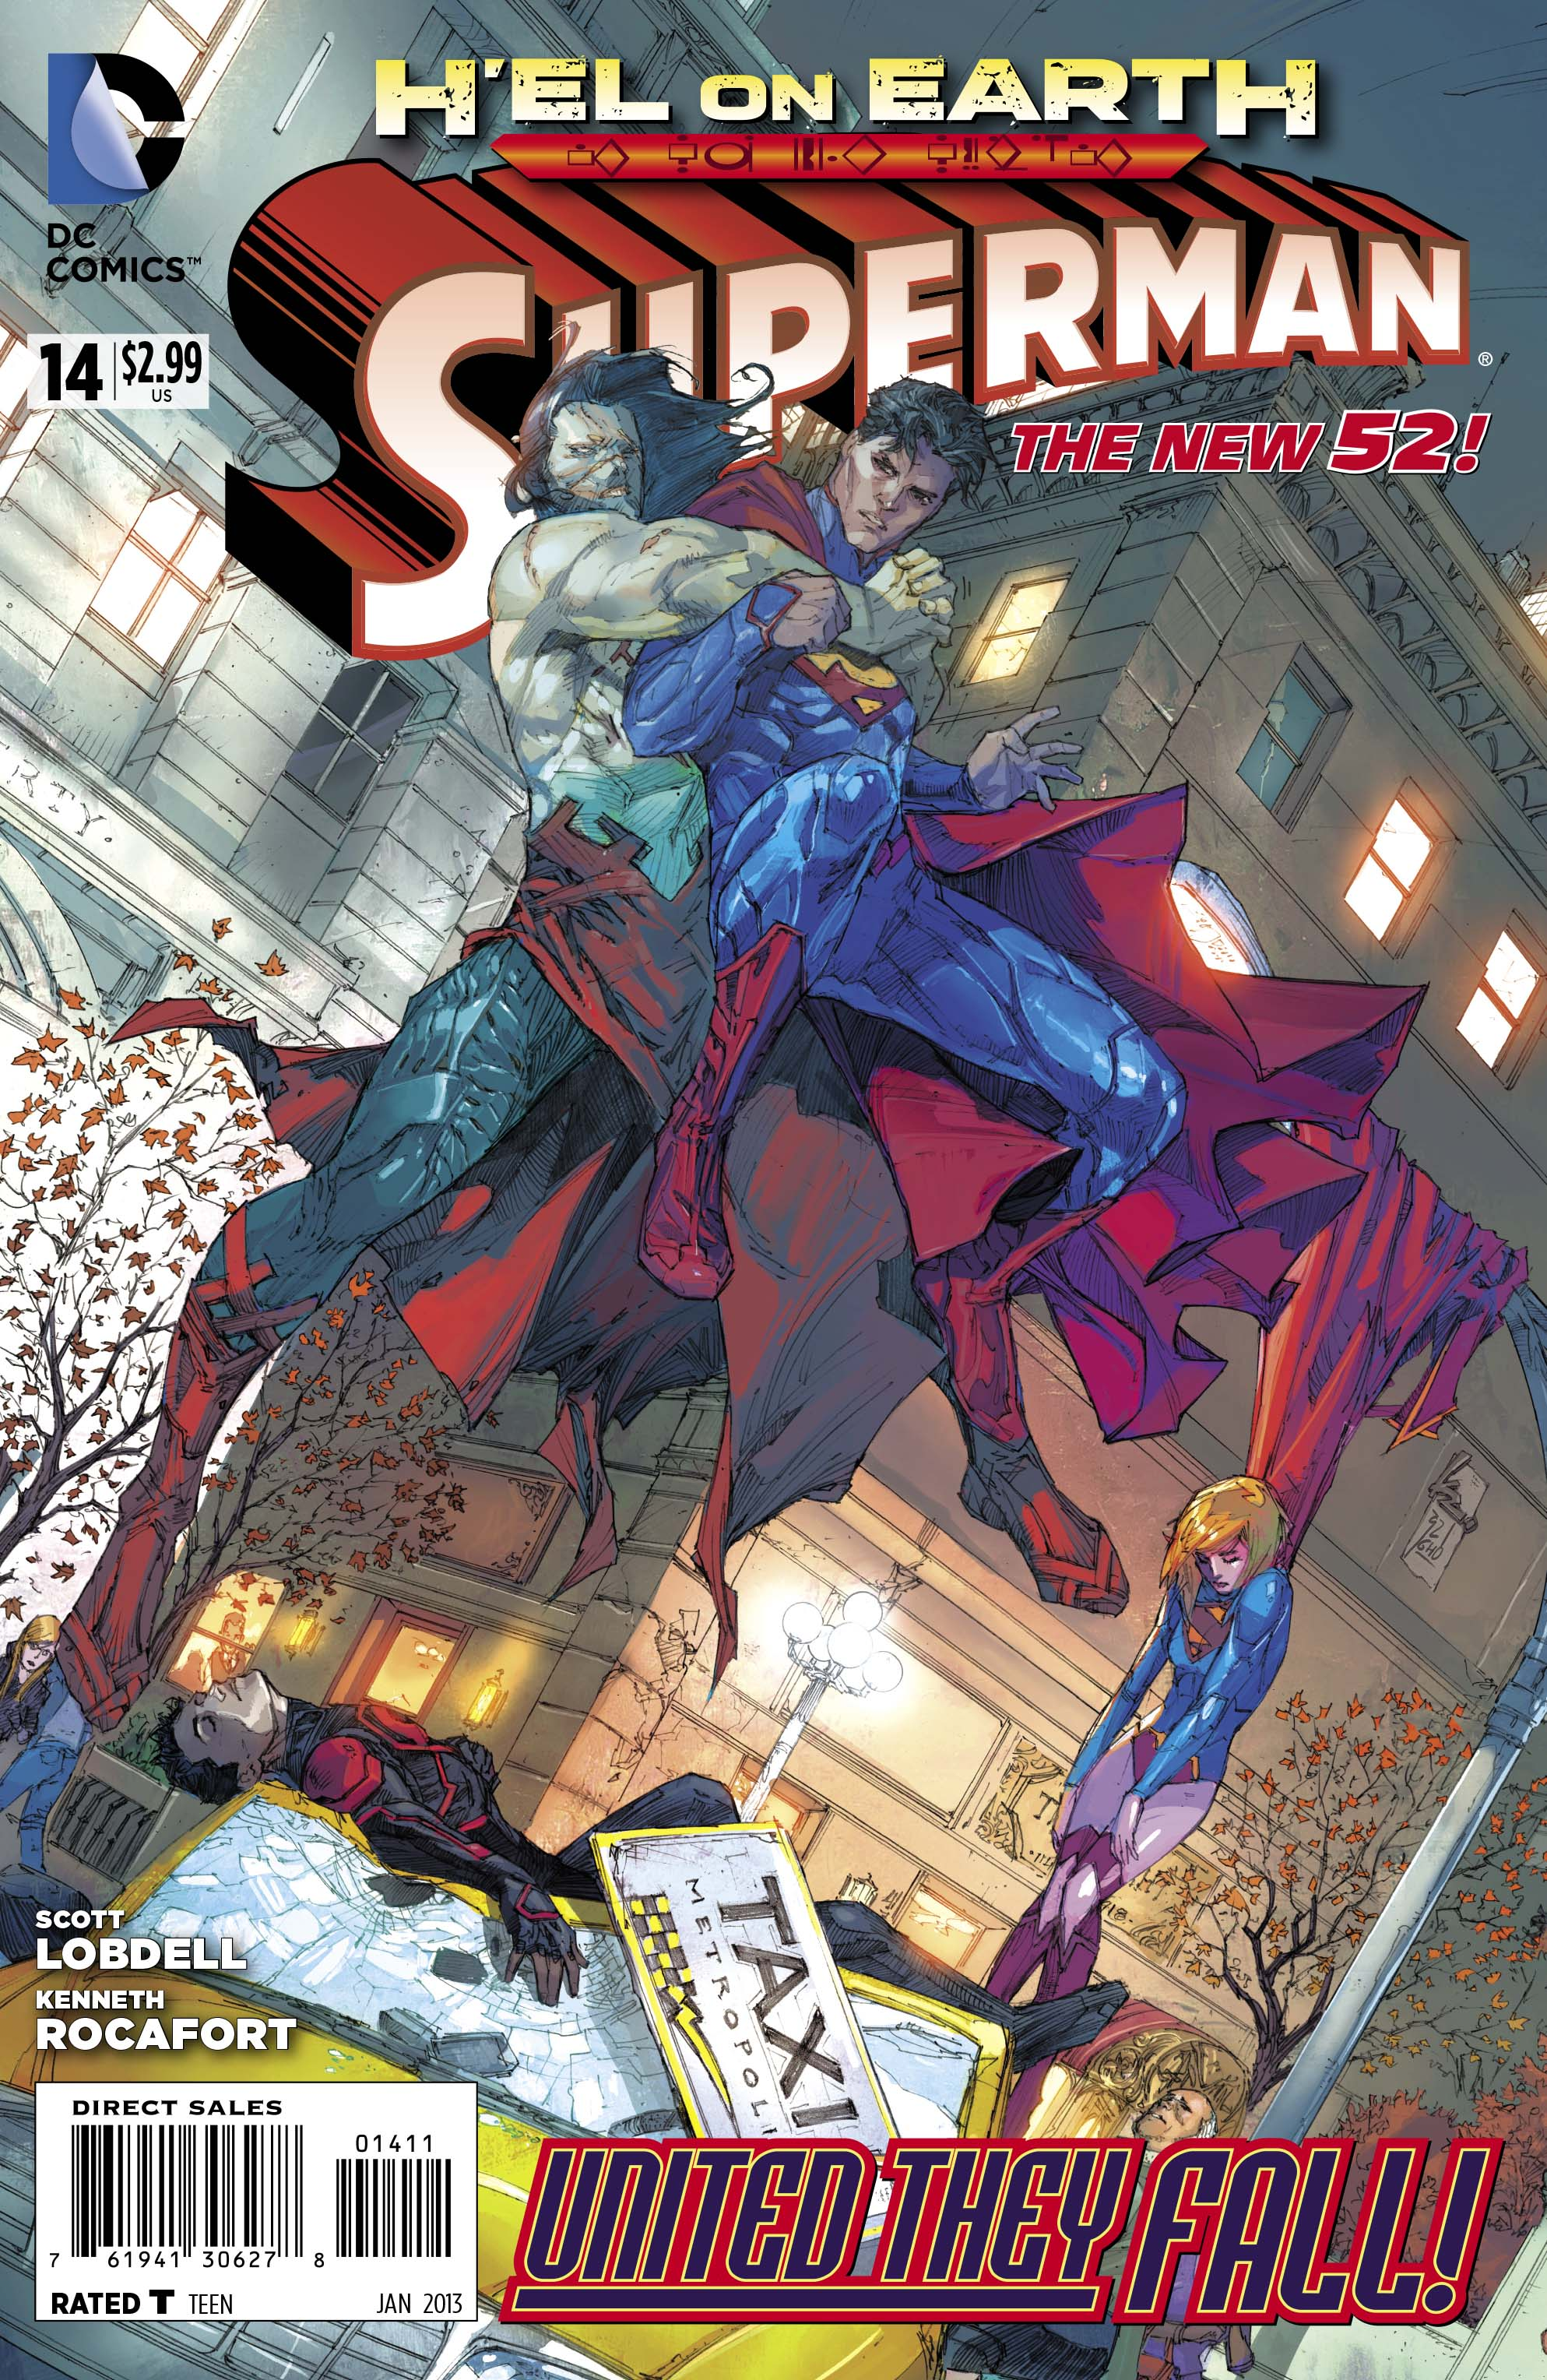 Superman (New 52) #14, cover art by Kenneth Rocafort